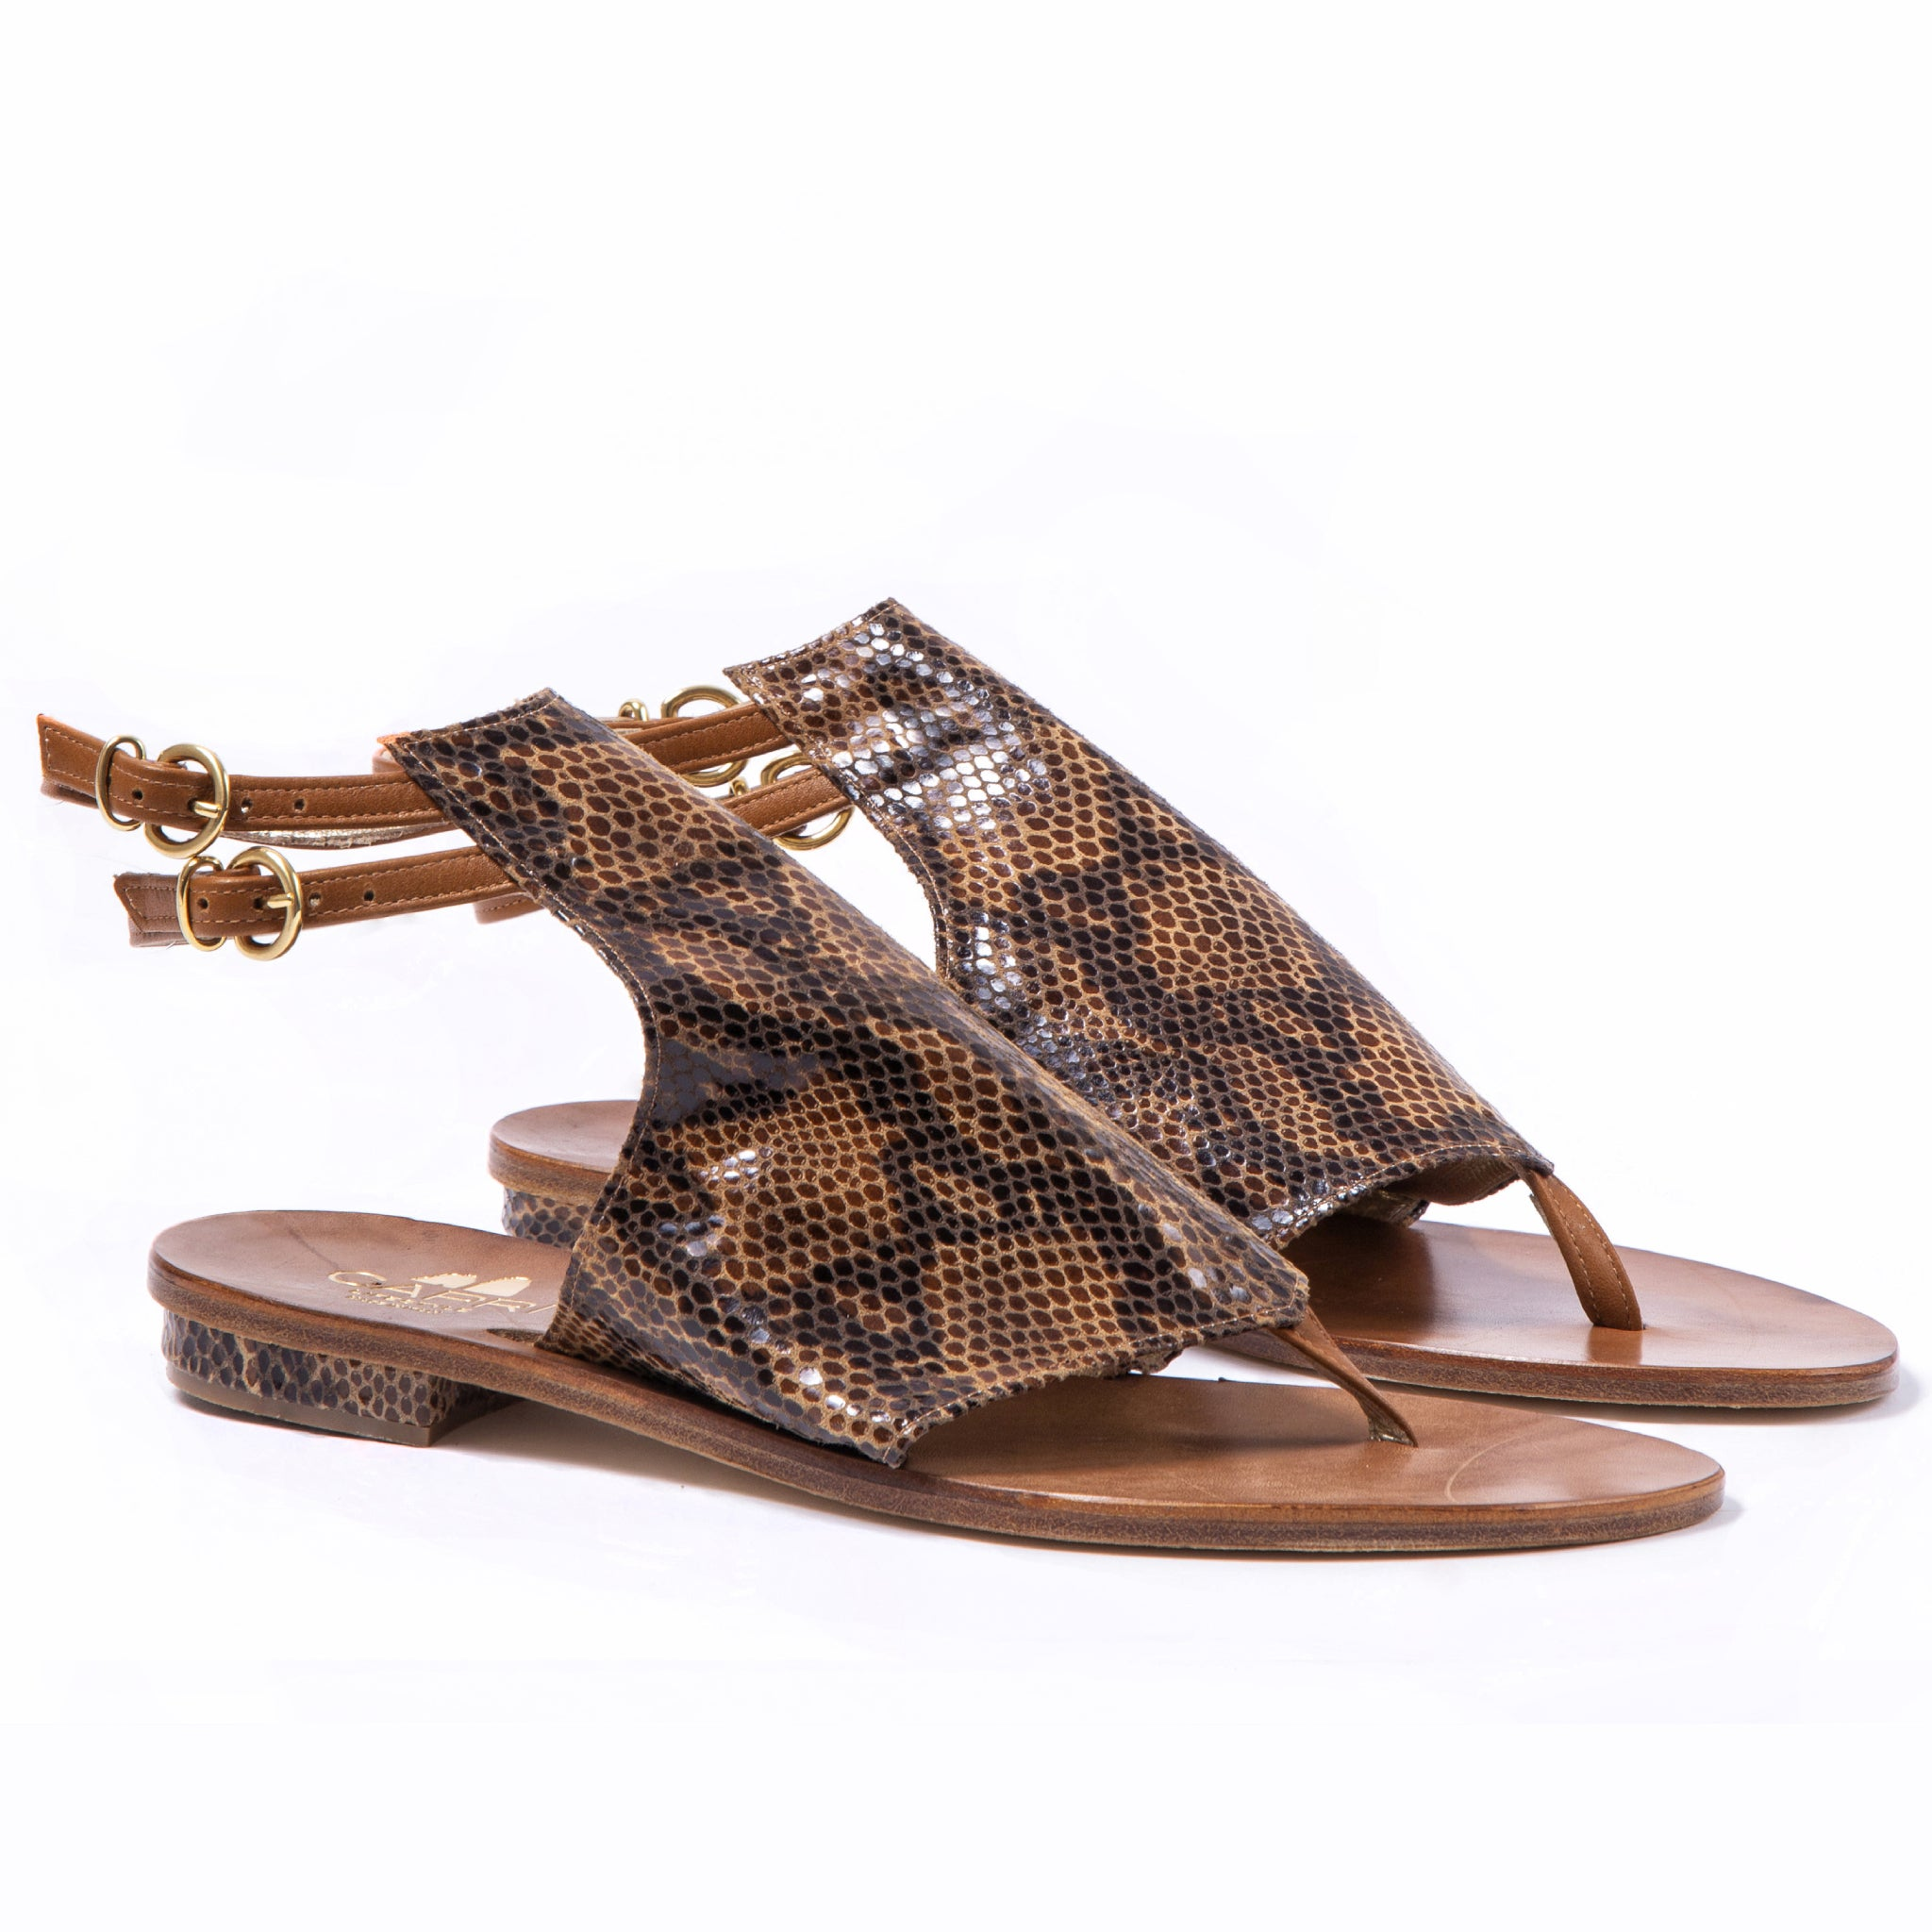 Ravello - Brown - Open Toe Snakeskin flat shoes